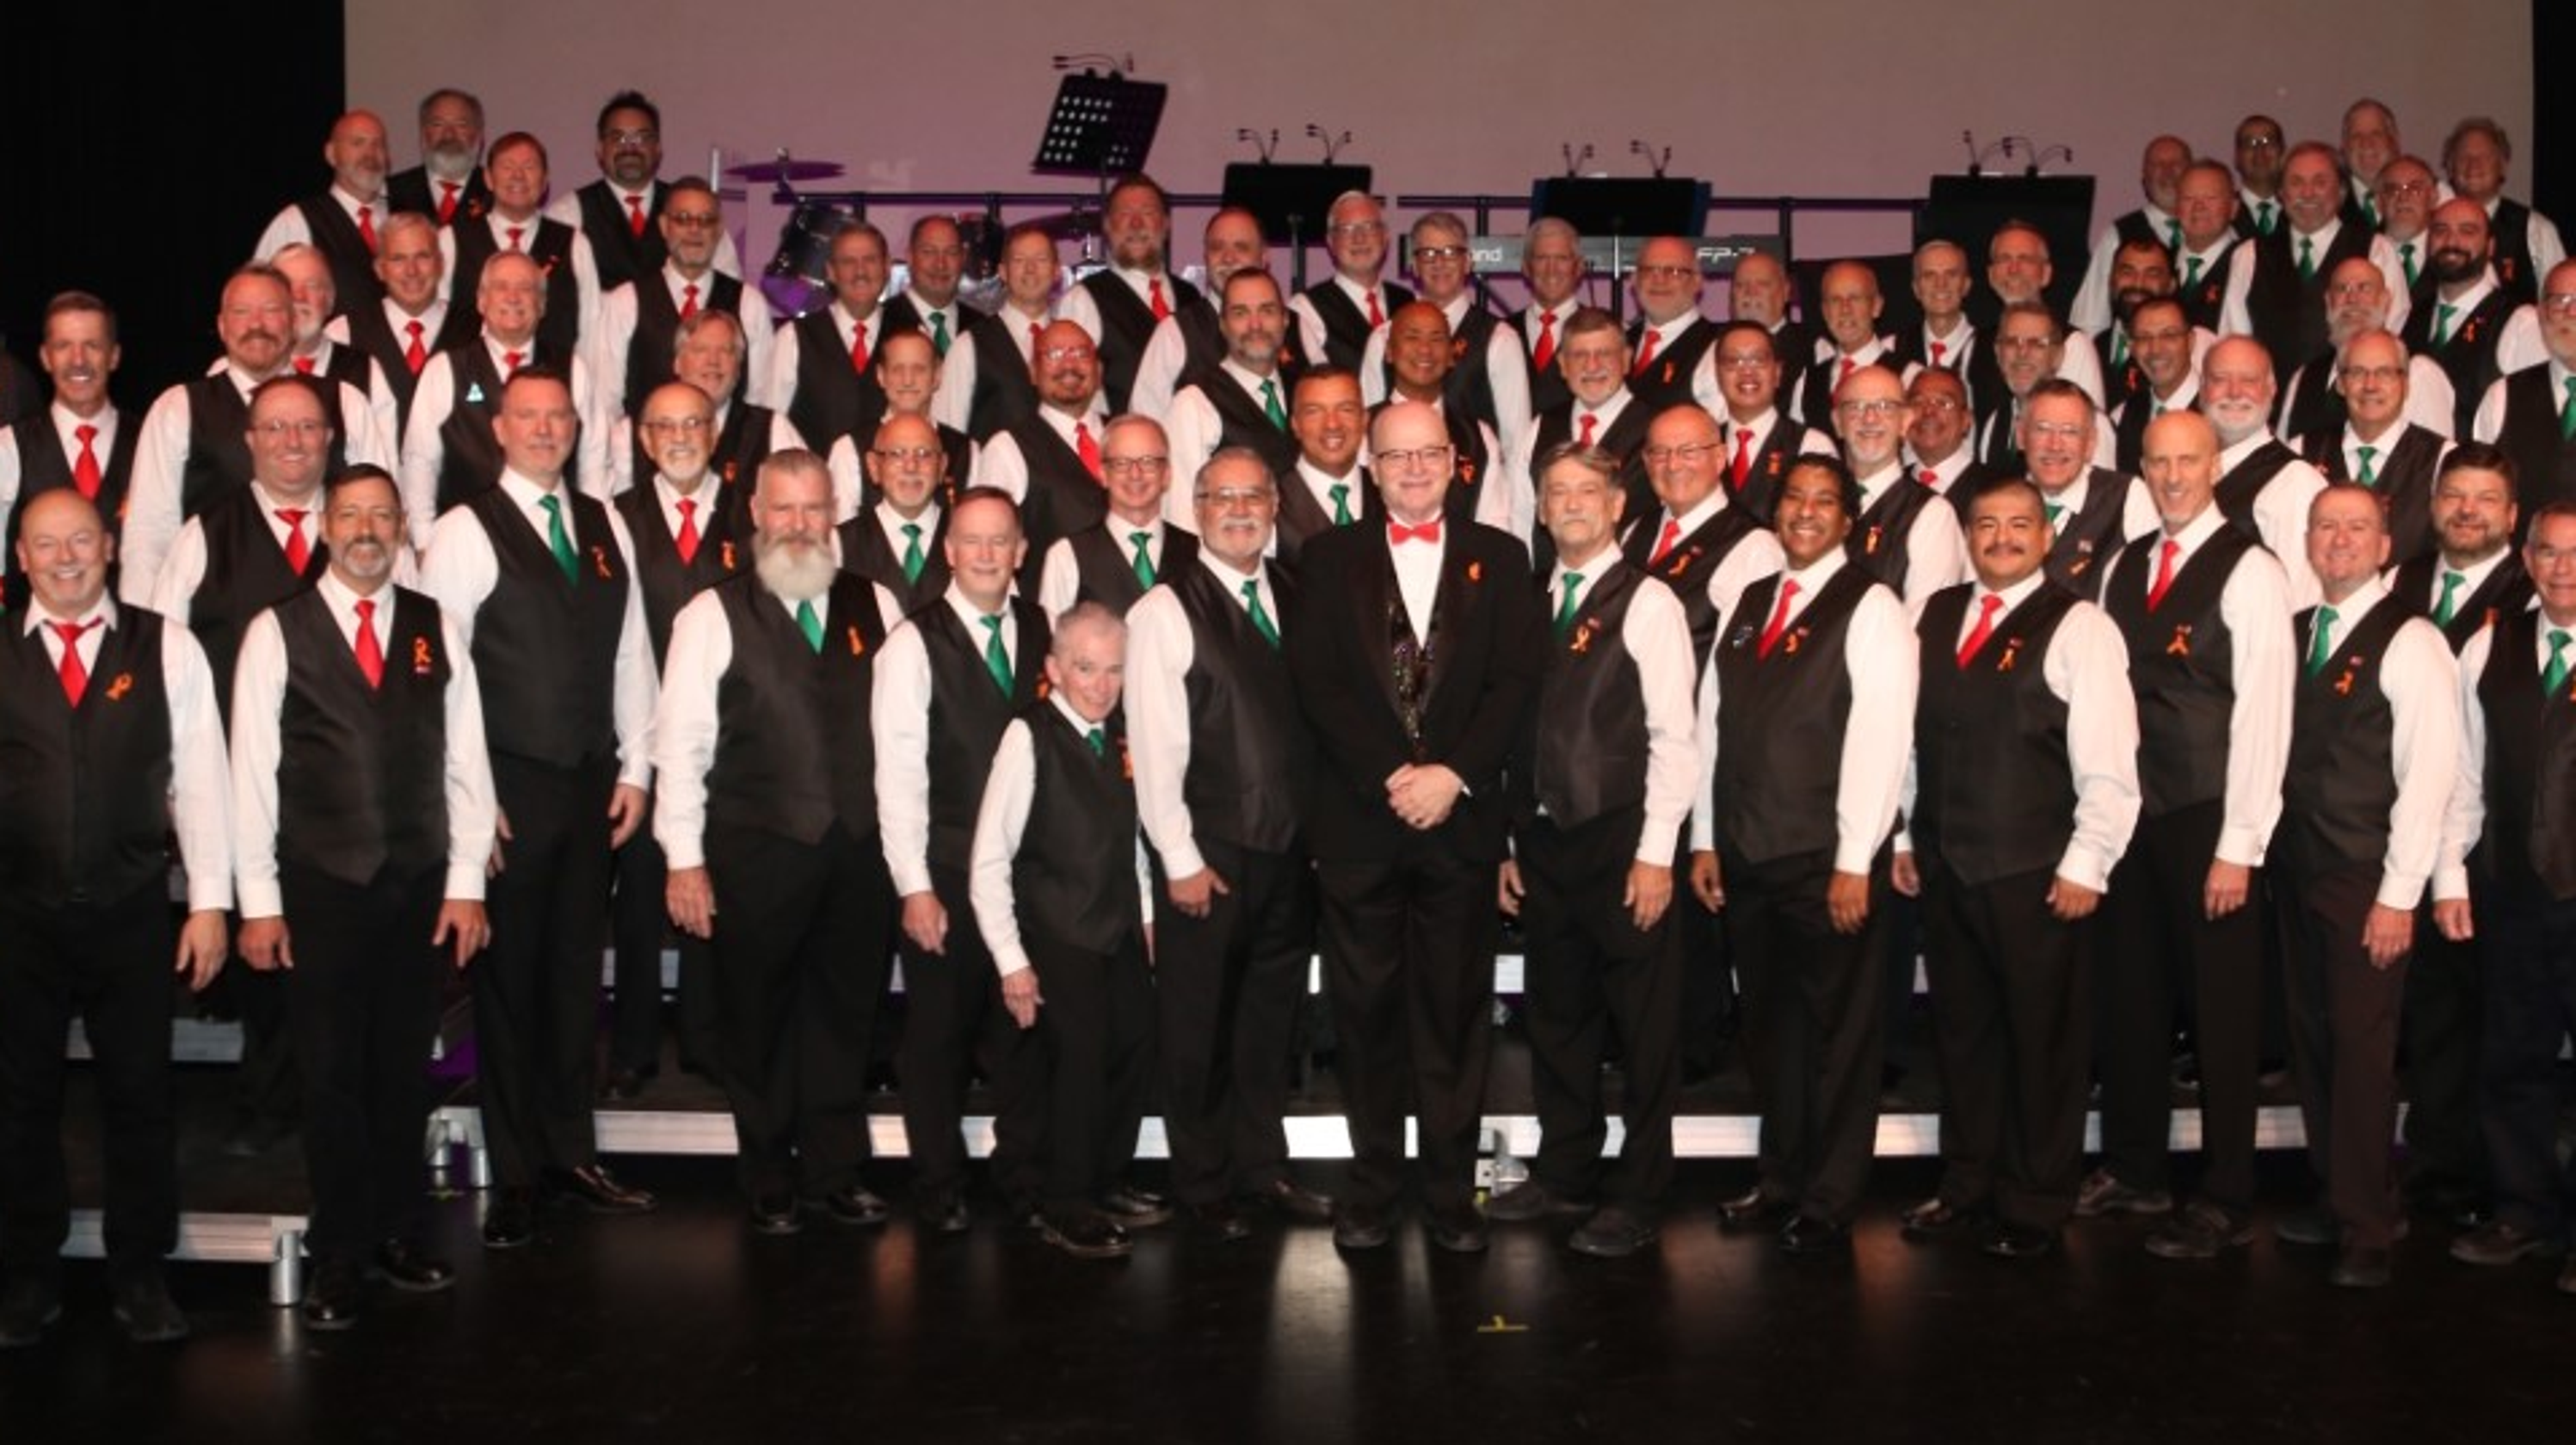 from Reuben palm springs gay mens chorus